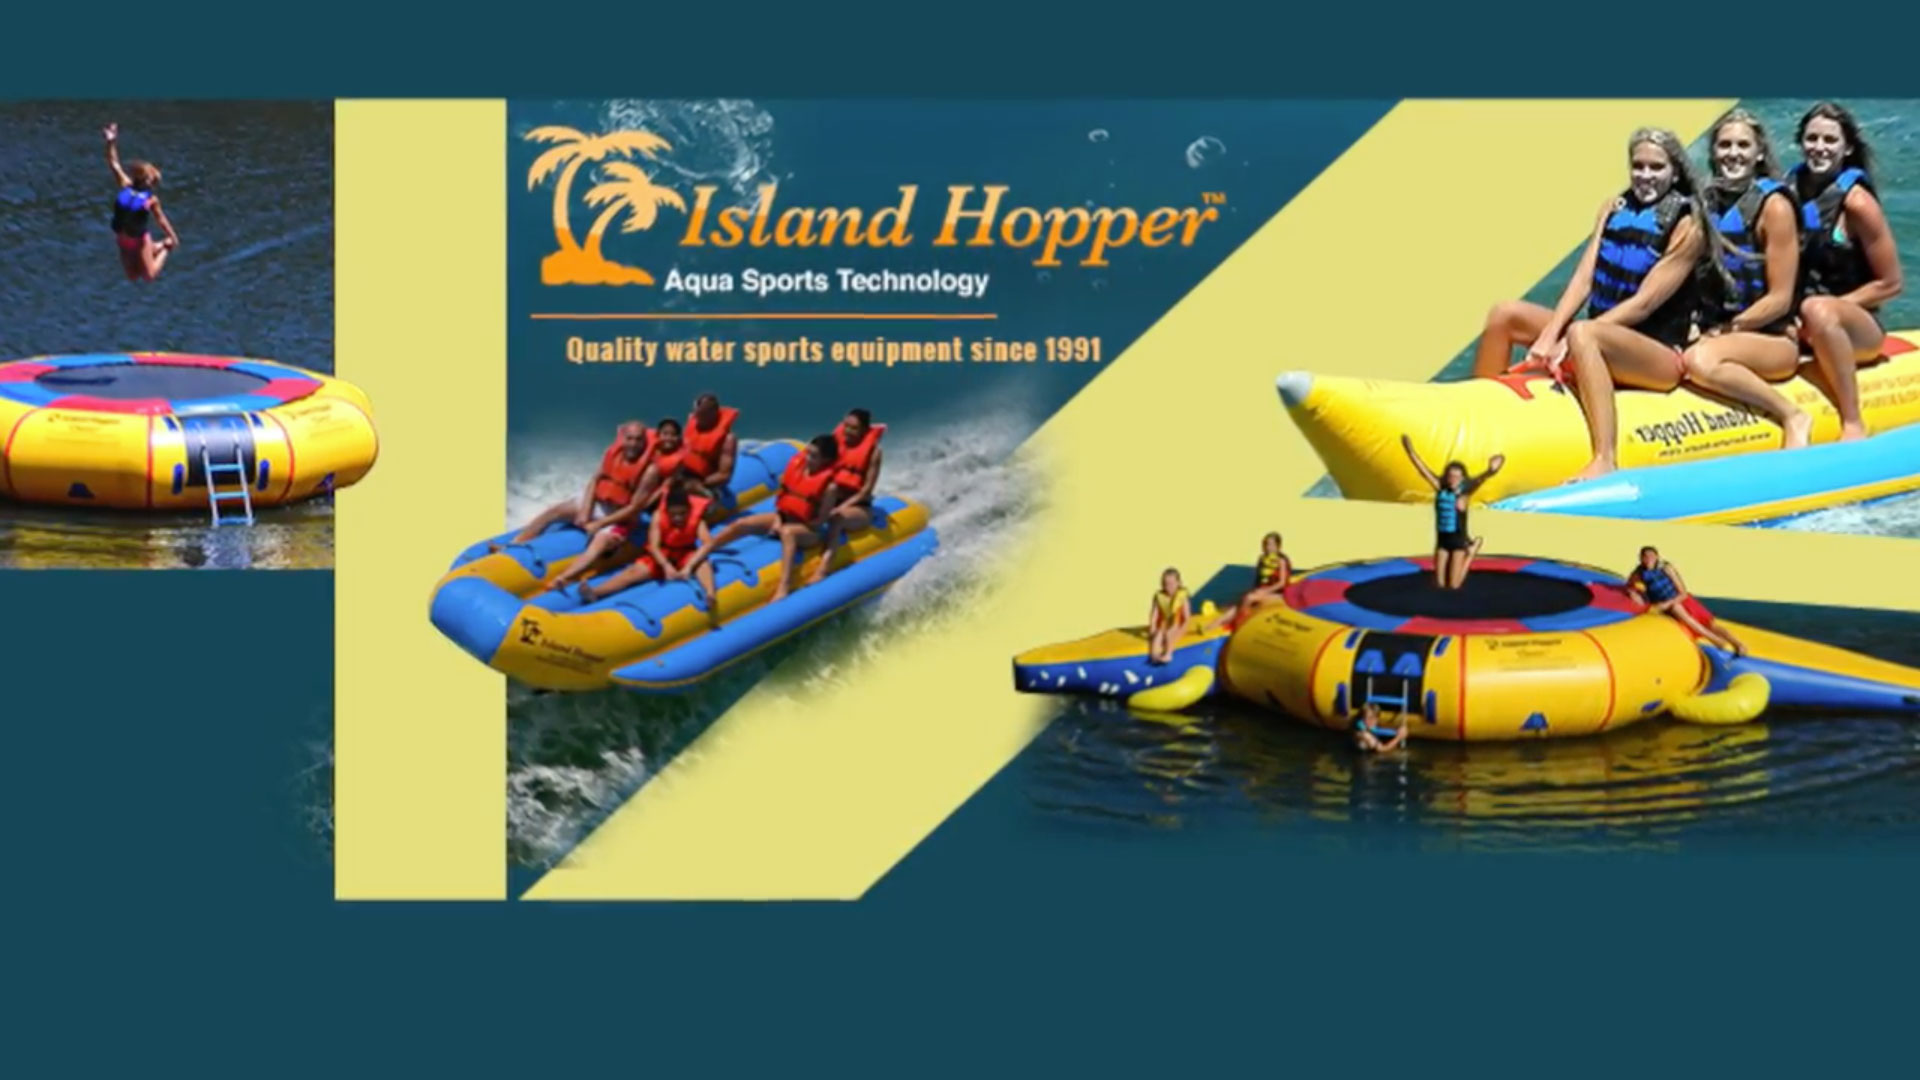 Water Sports Trampolines & Tubes